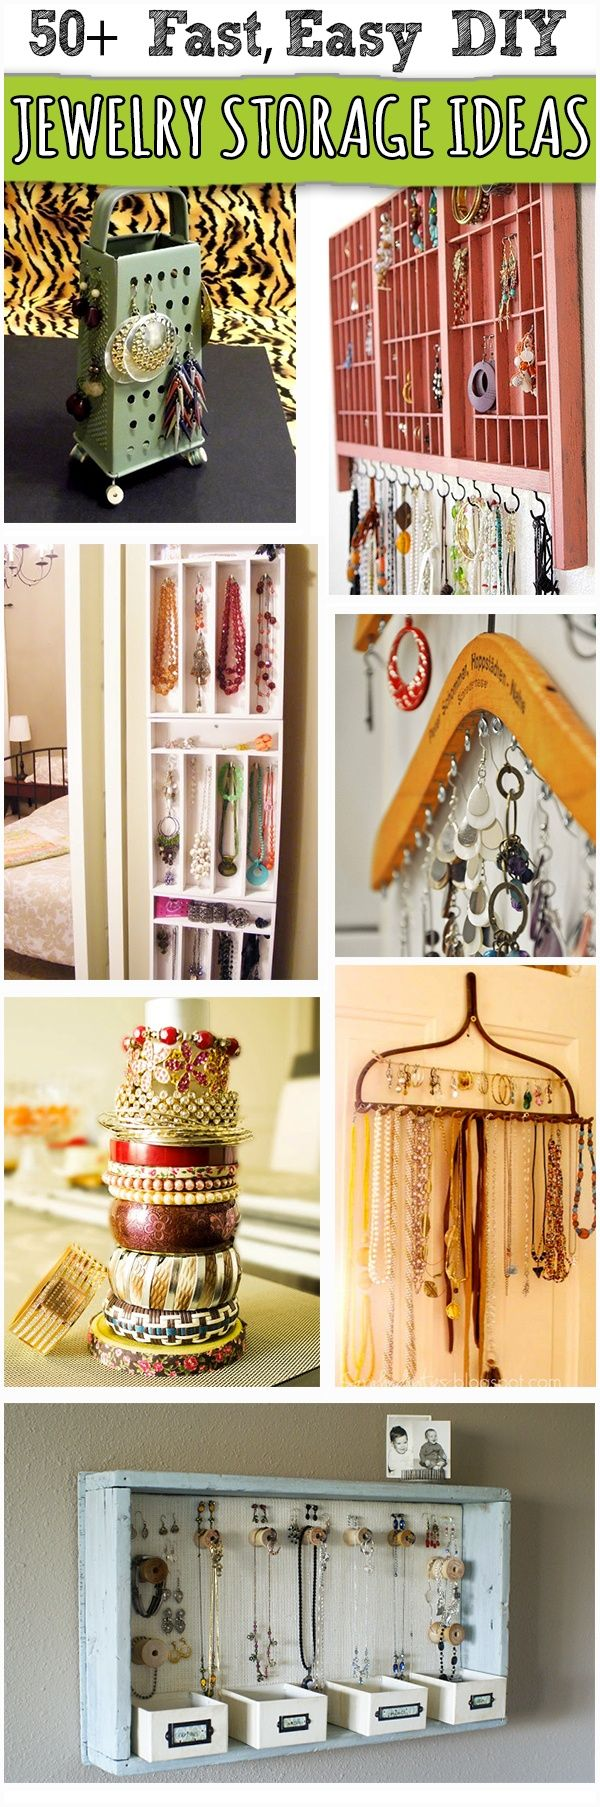 Over 50 Creative DIY Jewelry Storage, Organization, Display